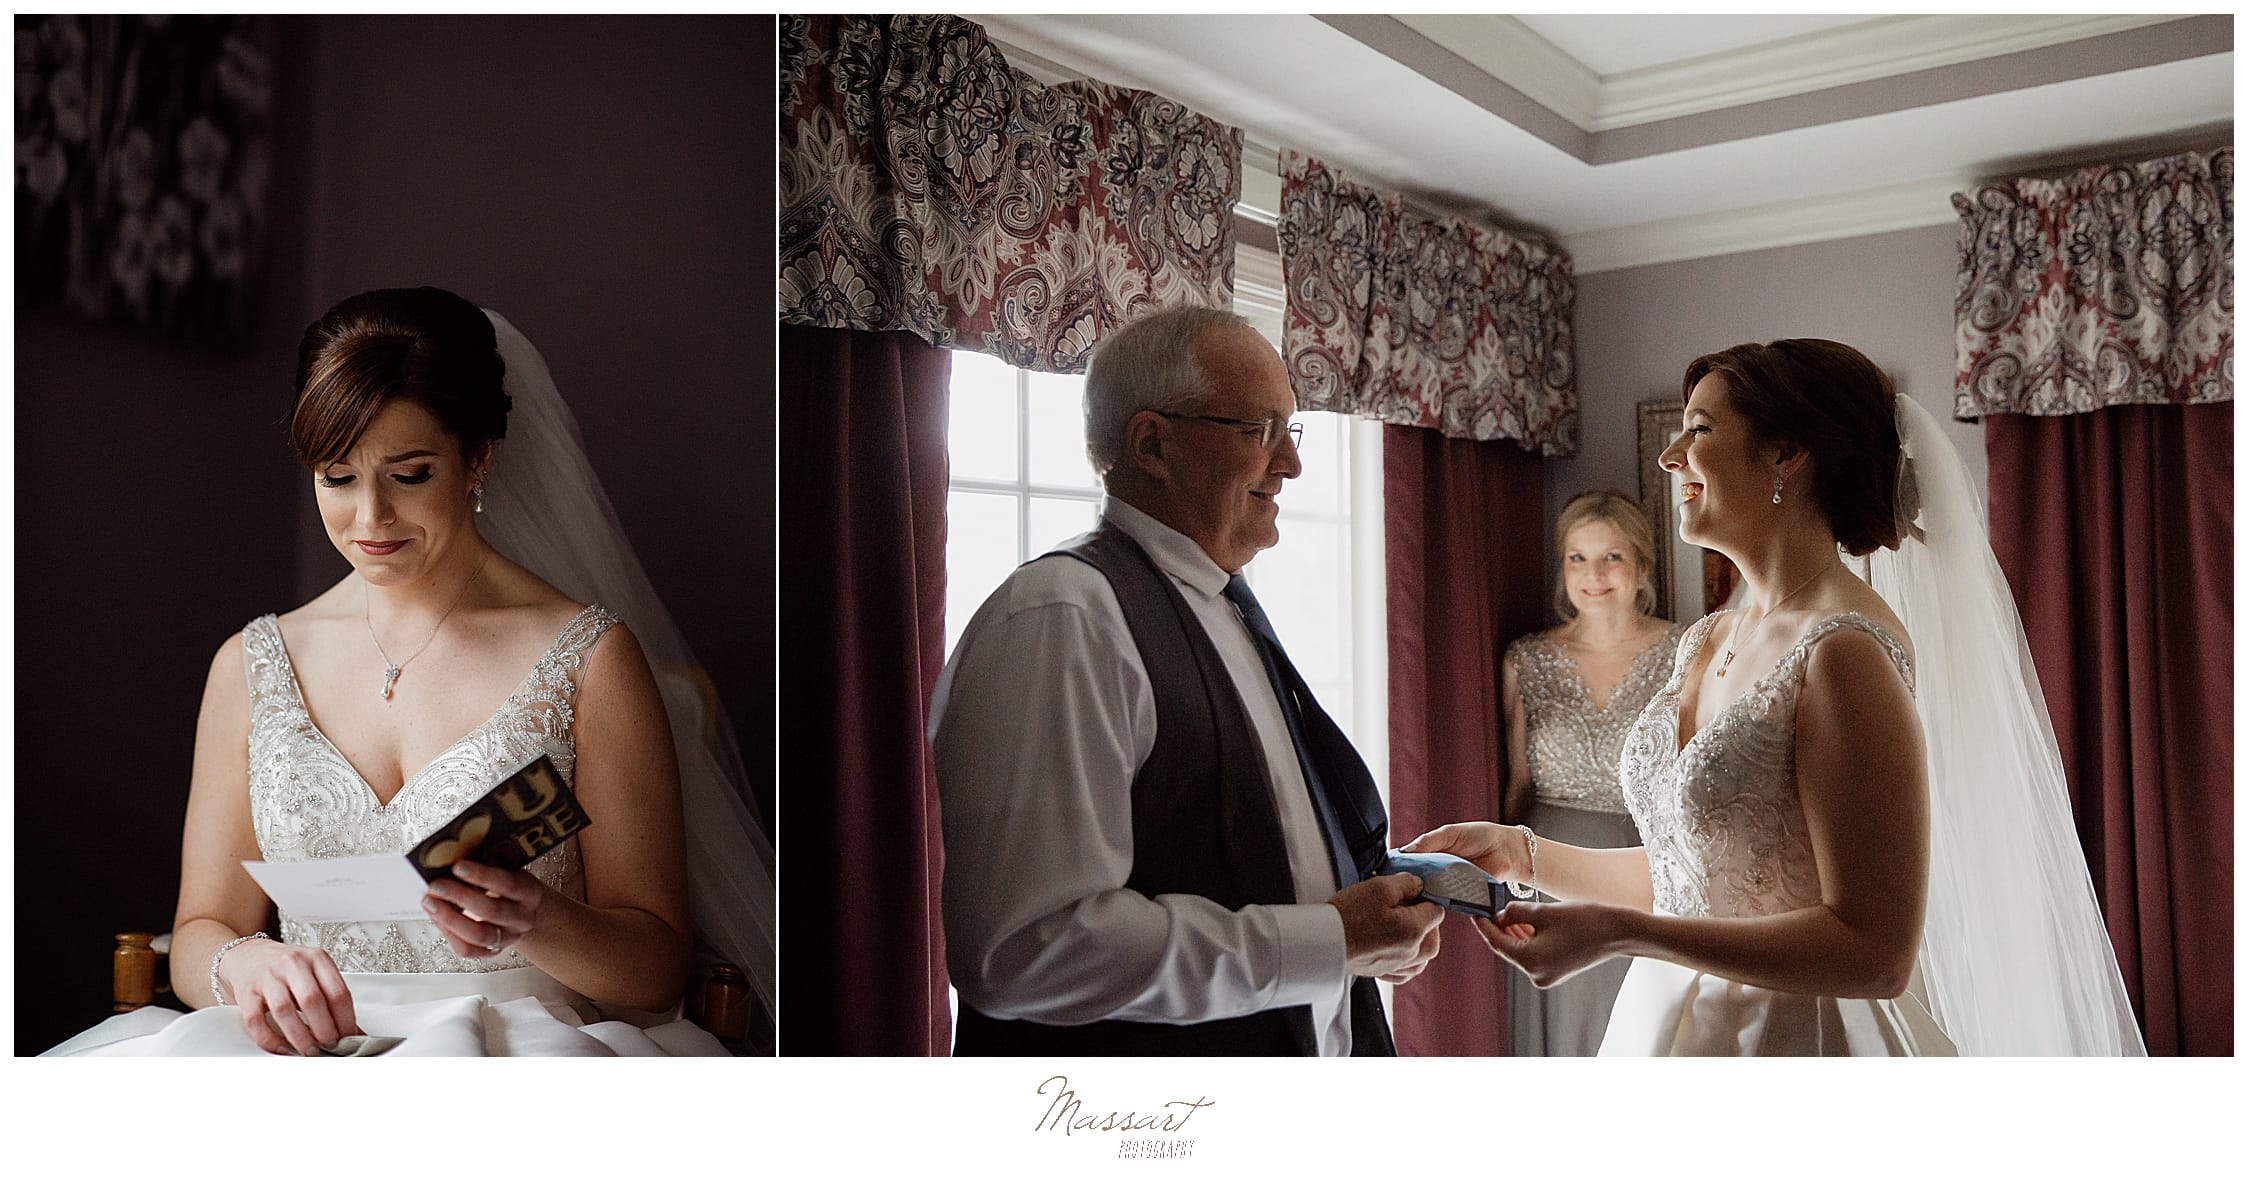 bride talks with parents before wedding day in MA photographed by Massart Photography